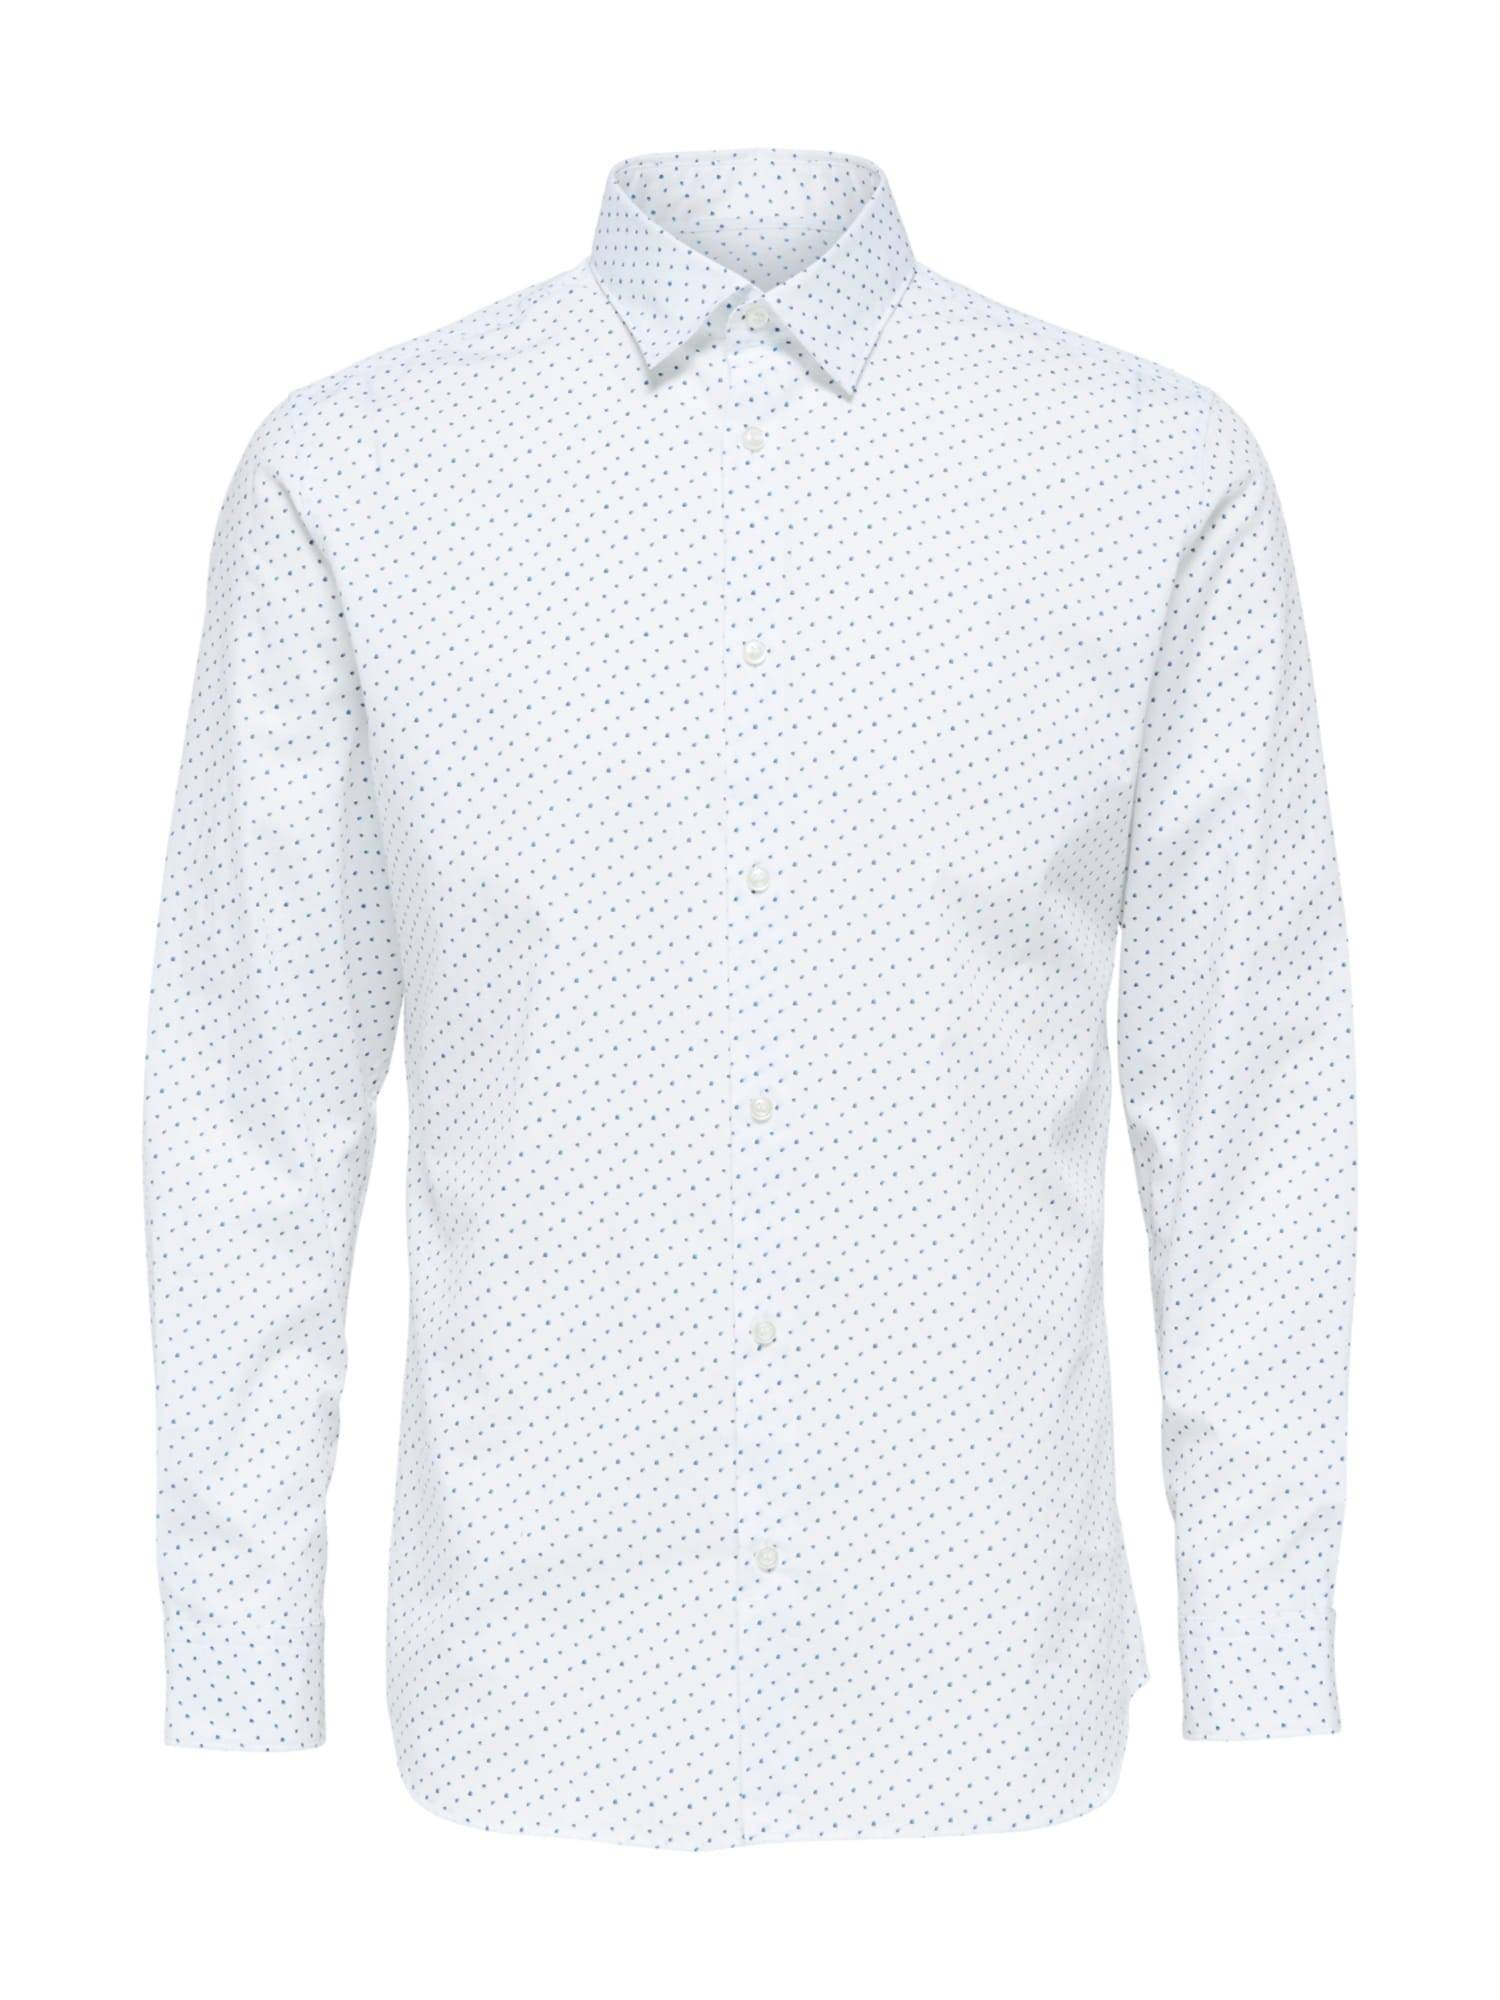 SELECTED HOMME Chemise business 'Cory'  - Blanc - Taille: XL - male